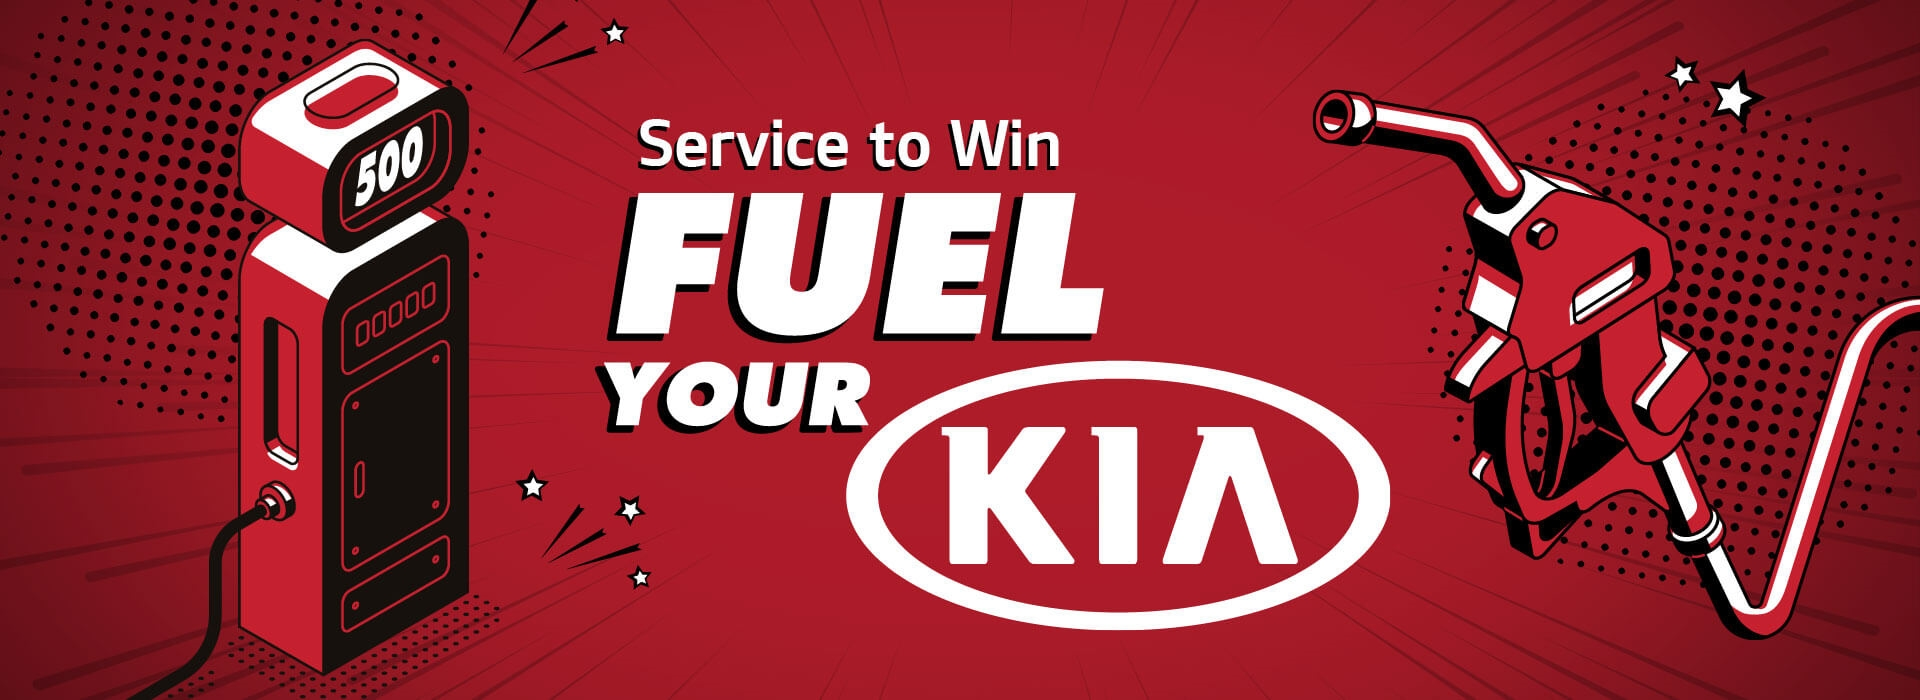 Fuel Your Kia